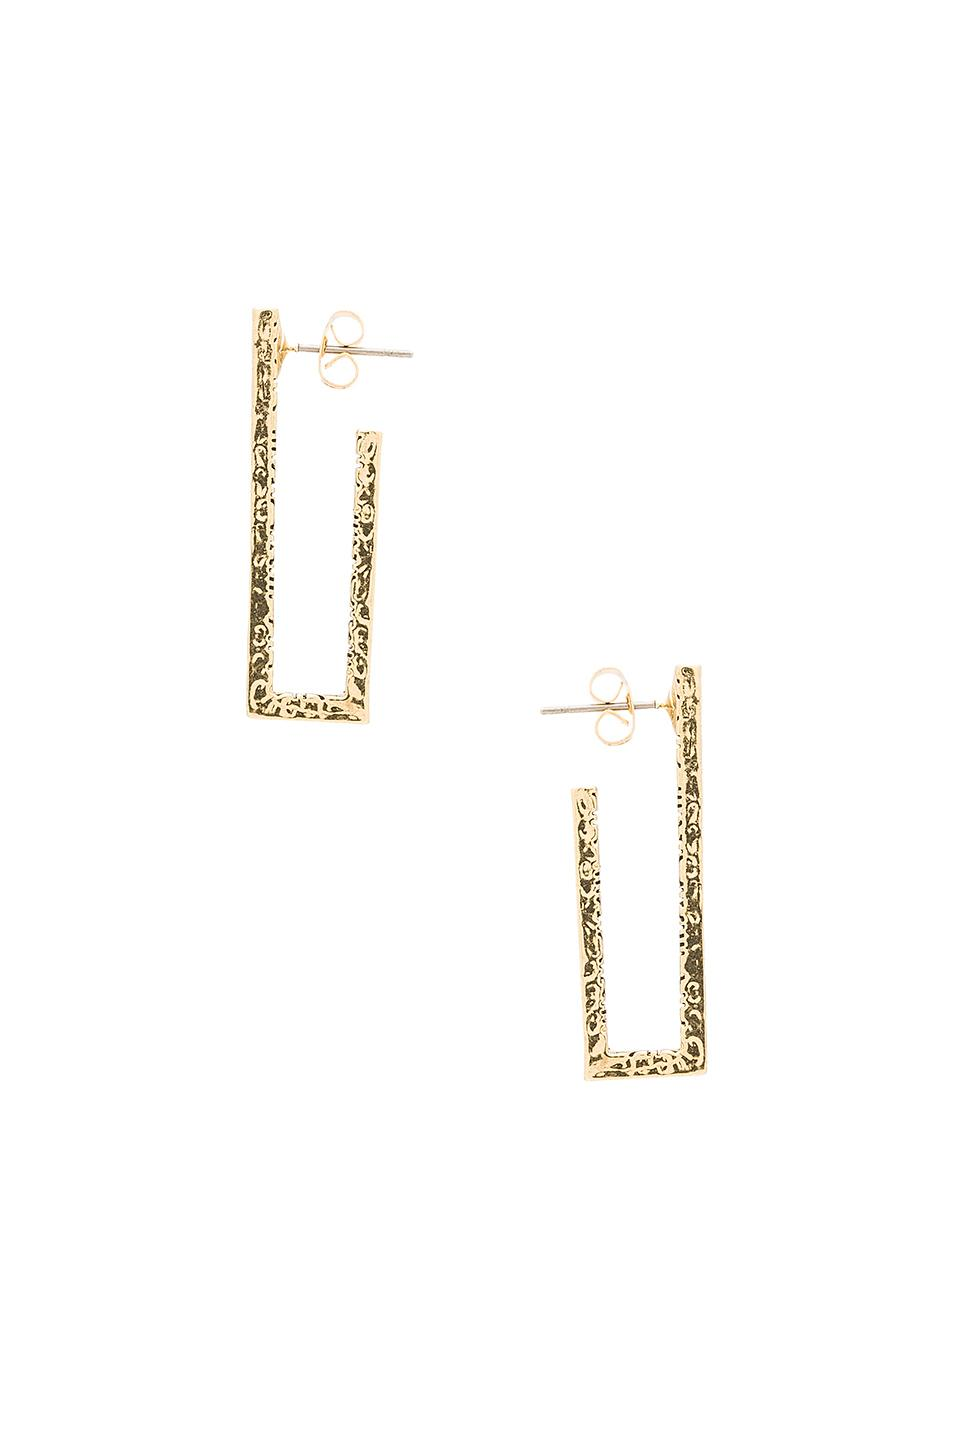 House Of Harlow Scutum Bar Earrings in Metallic Gold 56ptenz